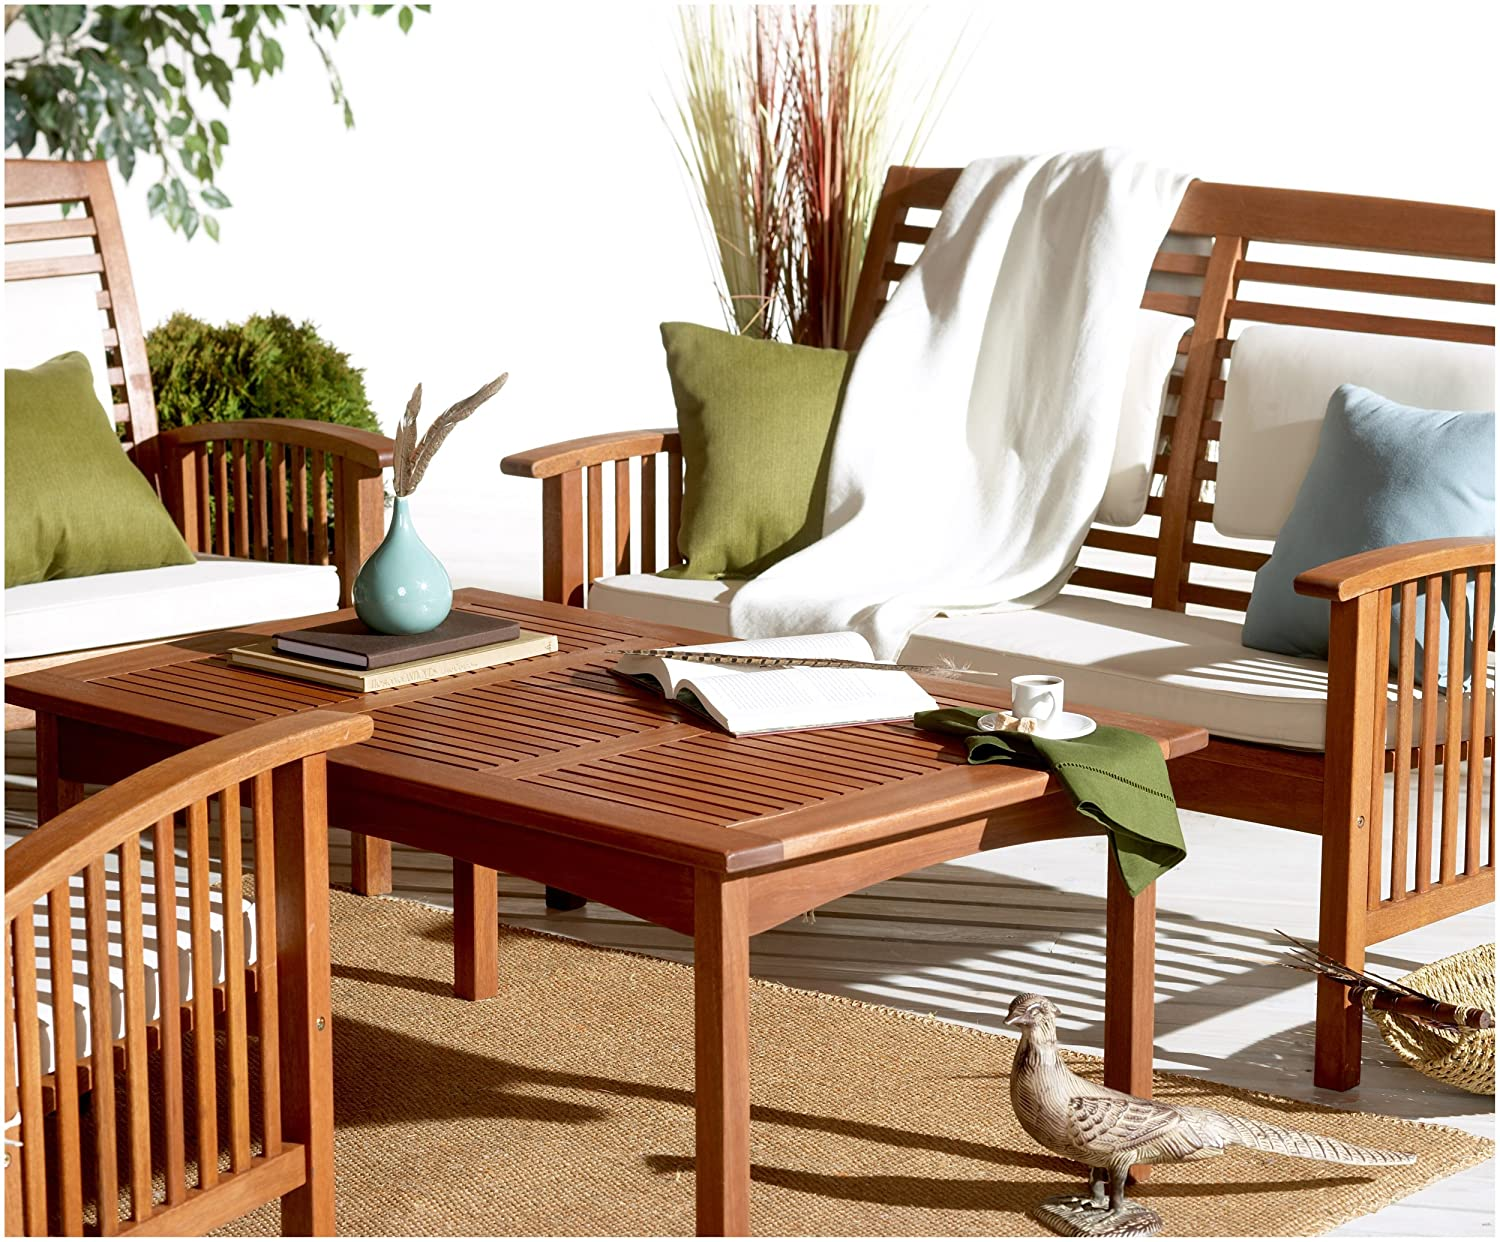 Amazon.com: Strathwood Gibranta All-Weather Hardwood Furniture Collection:  Garden & Outdoor